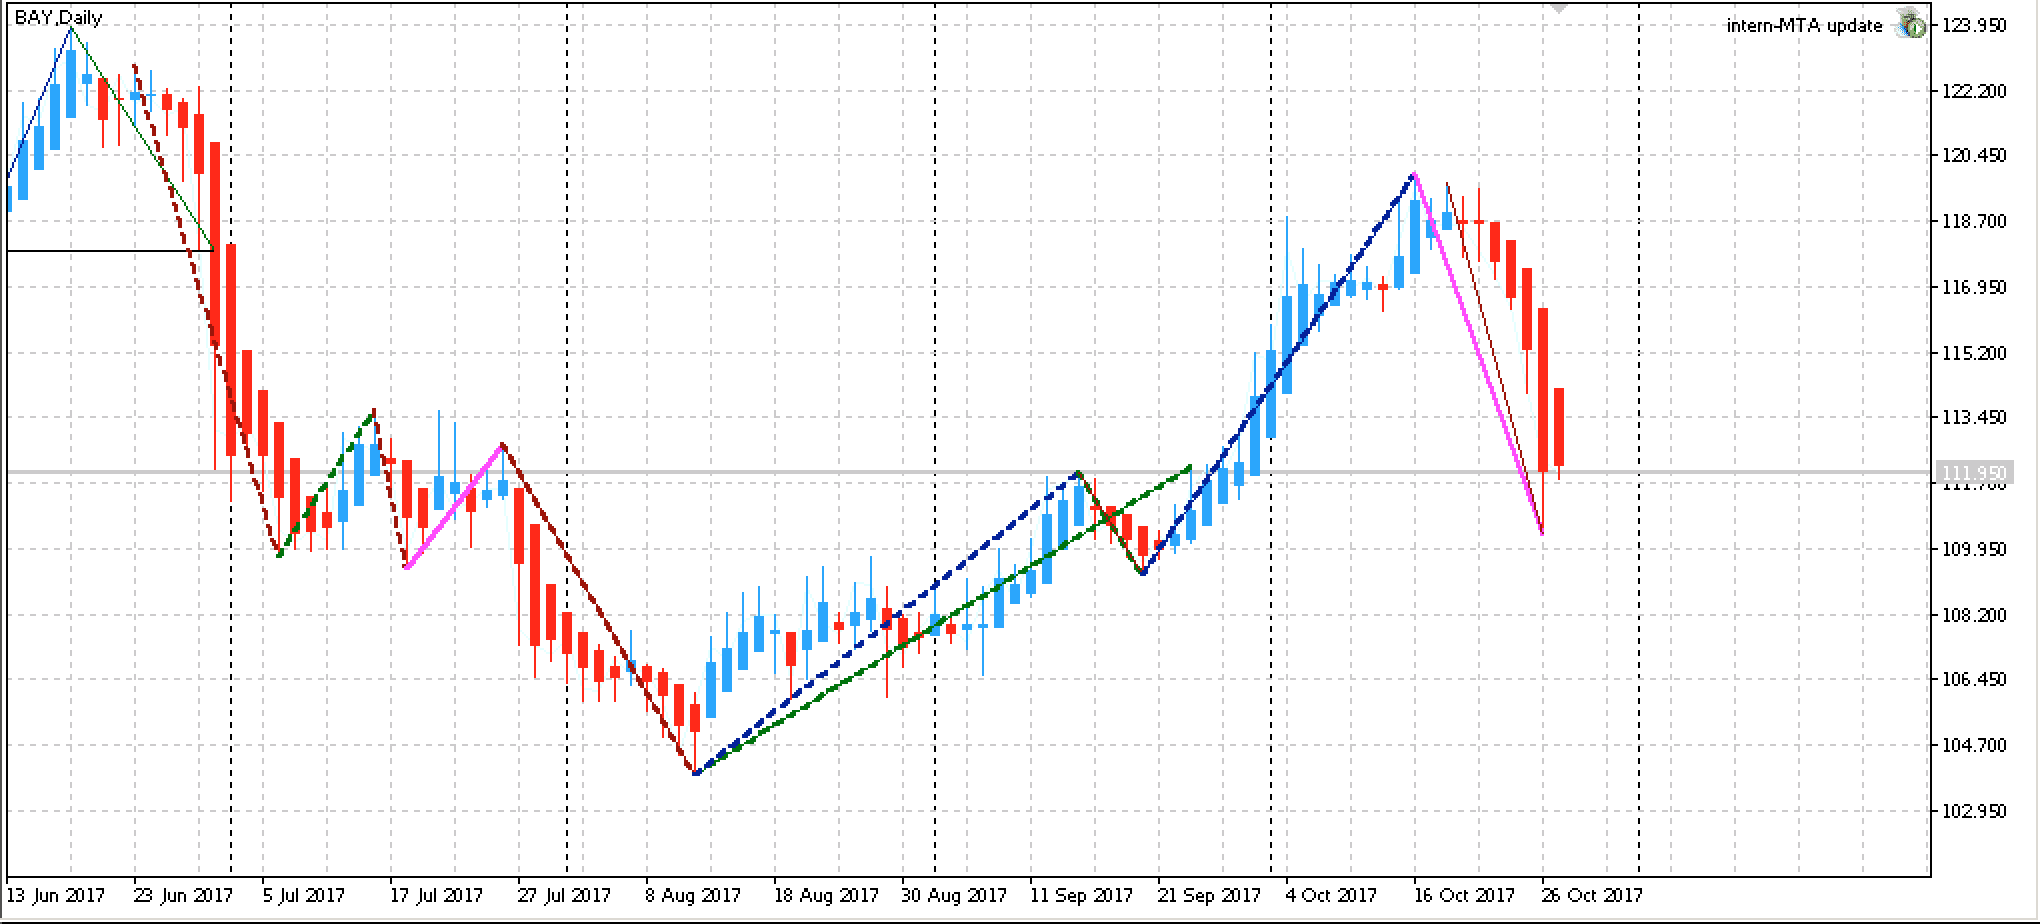 Top Edge-Aktien KW 44 2017